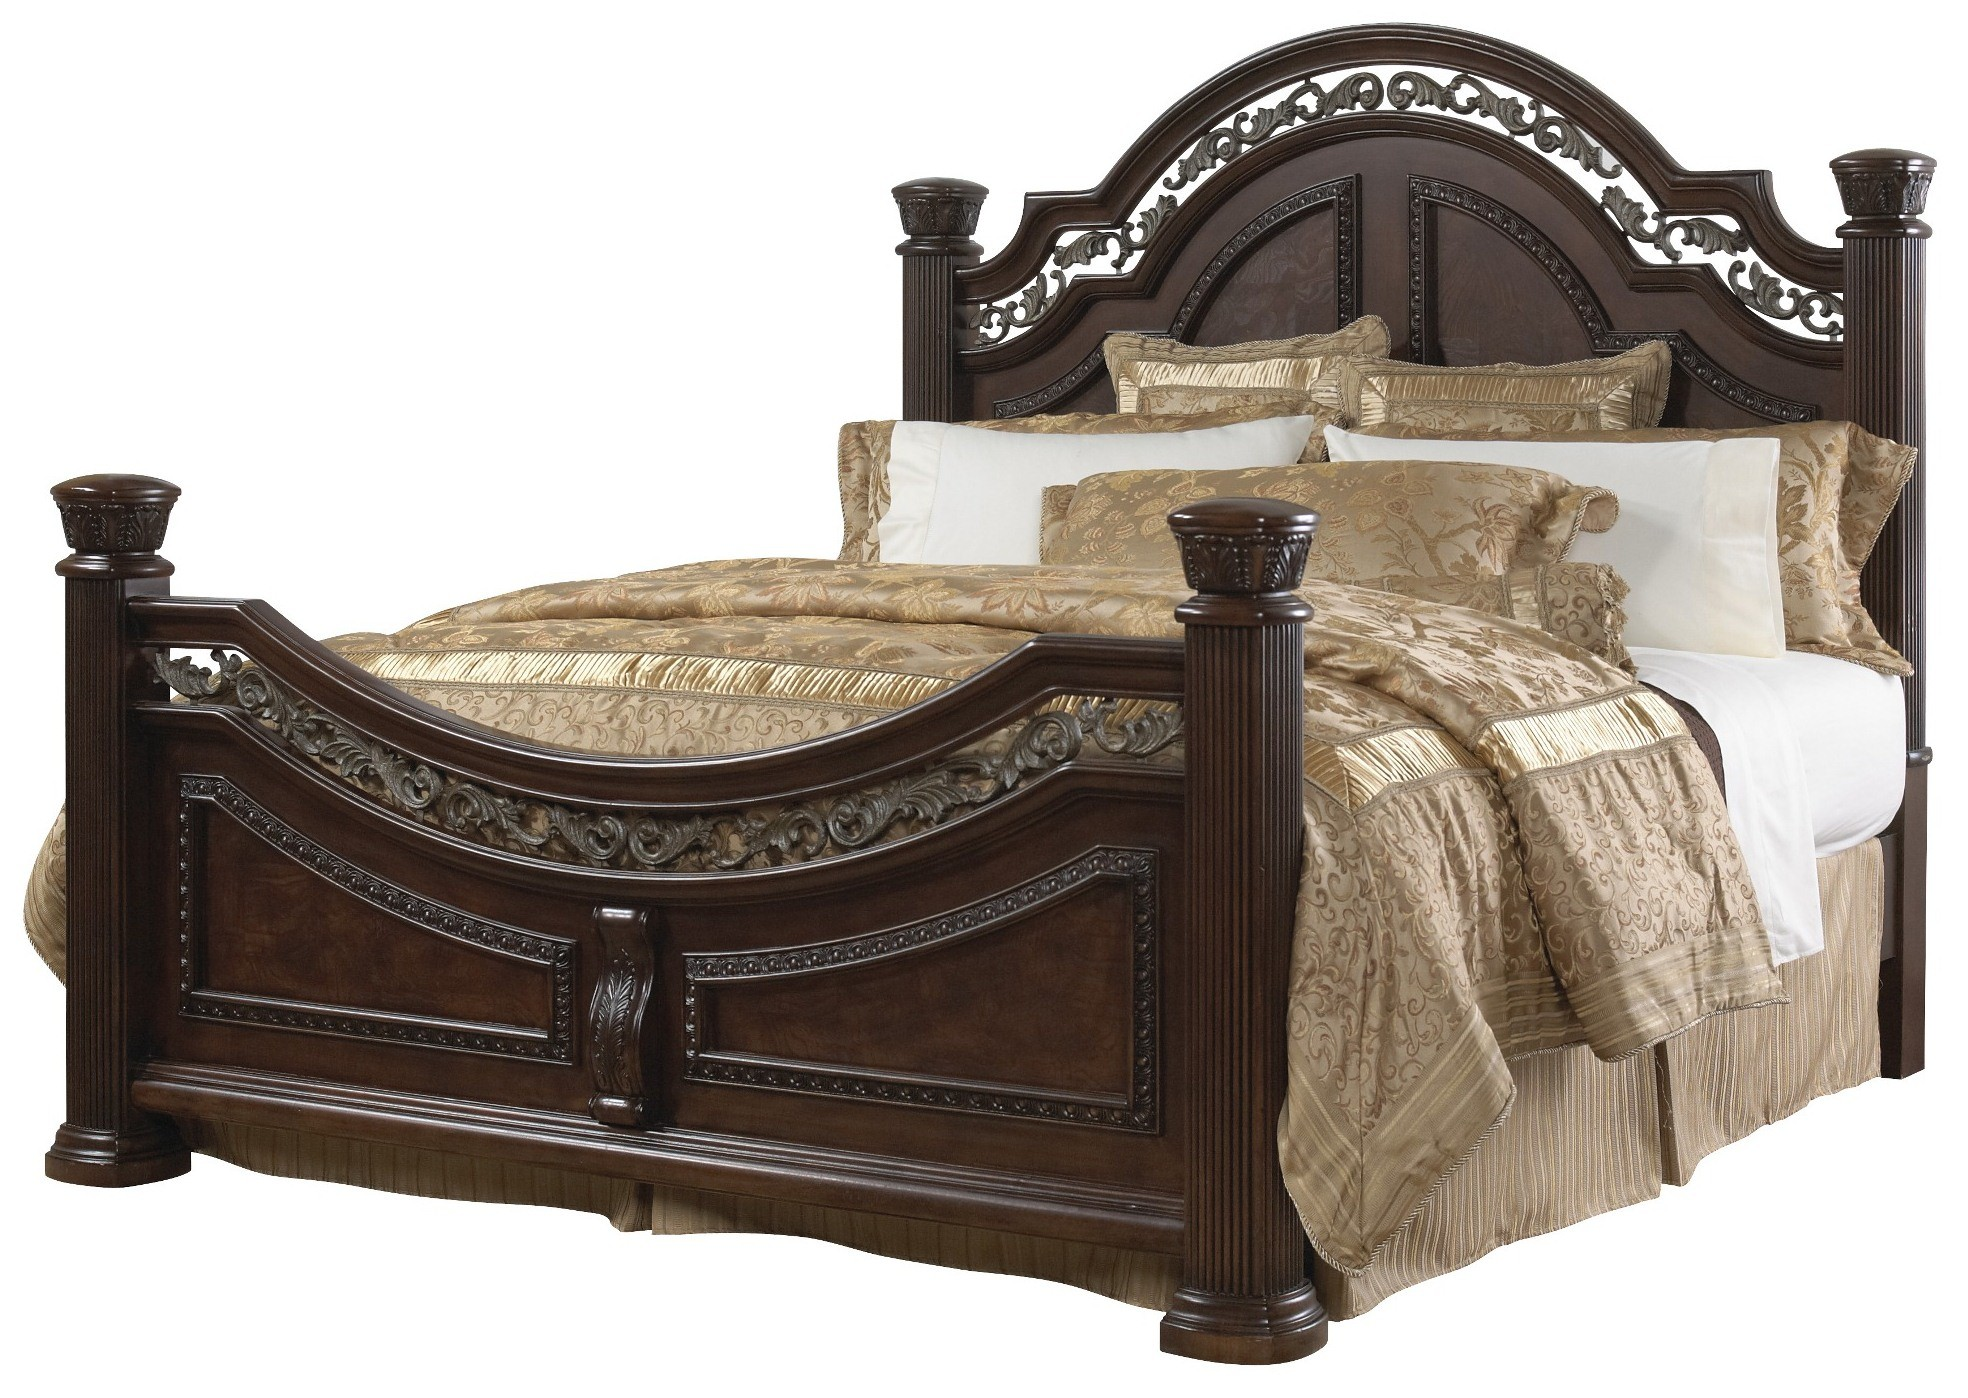 San marino cal king size bed from samuel lawrence 3530 for Cal king bed size